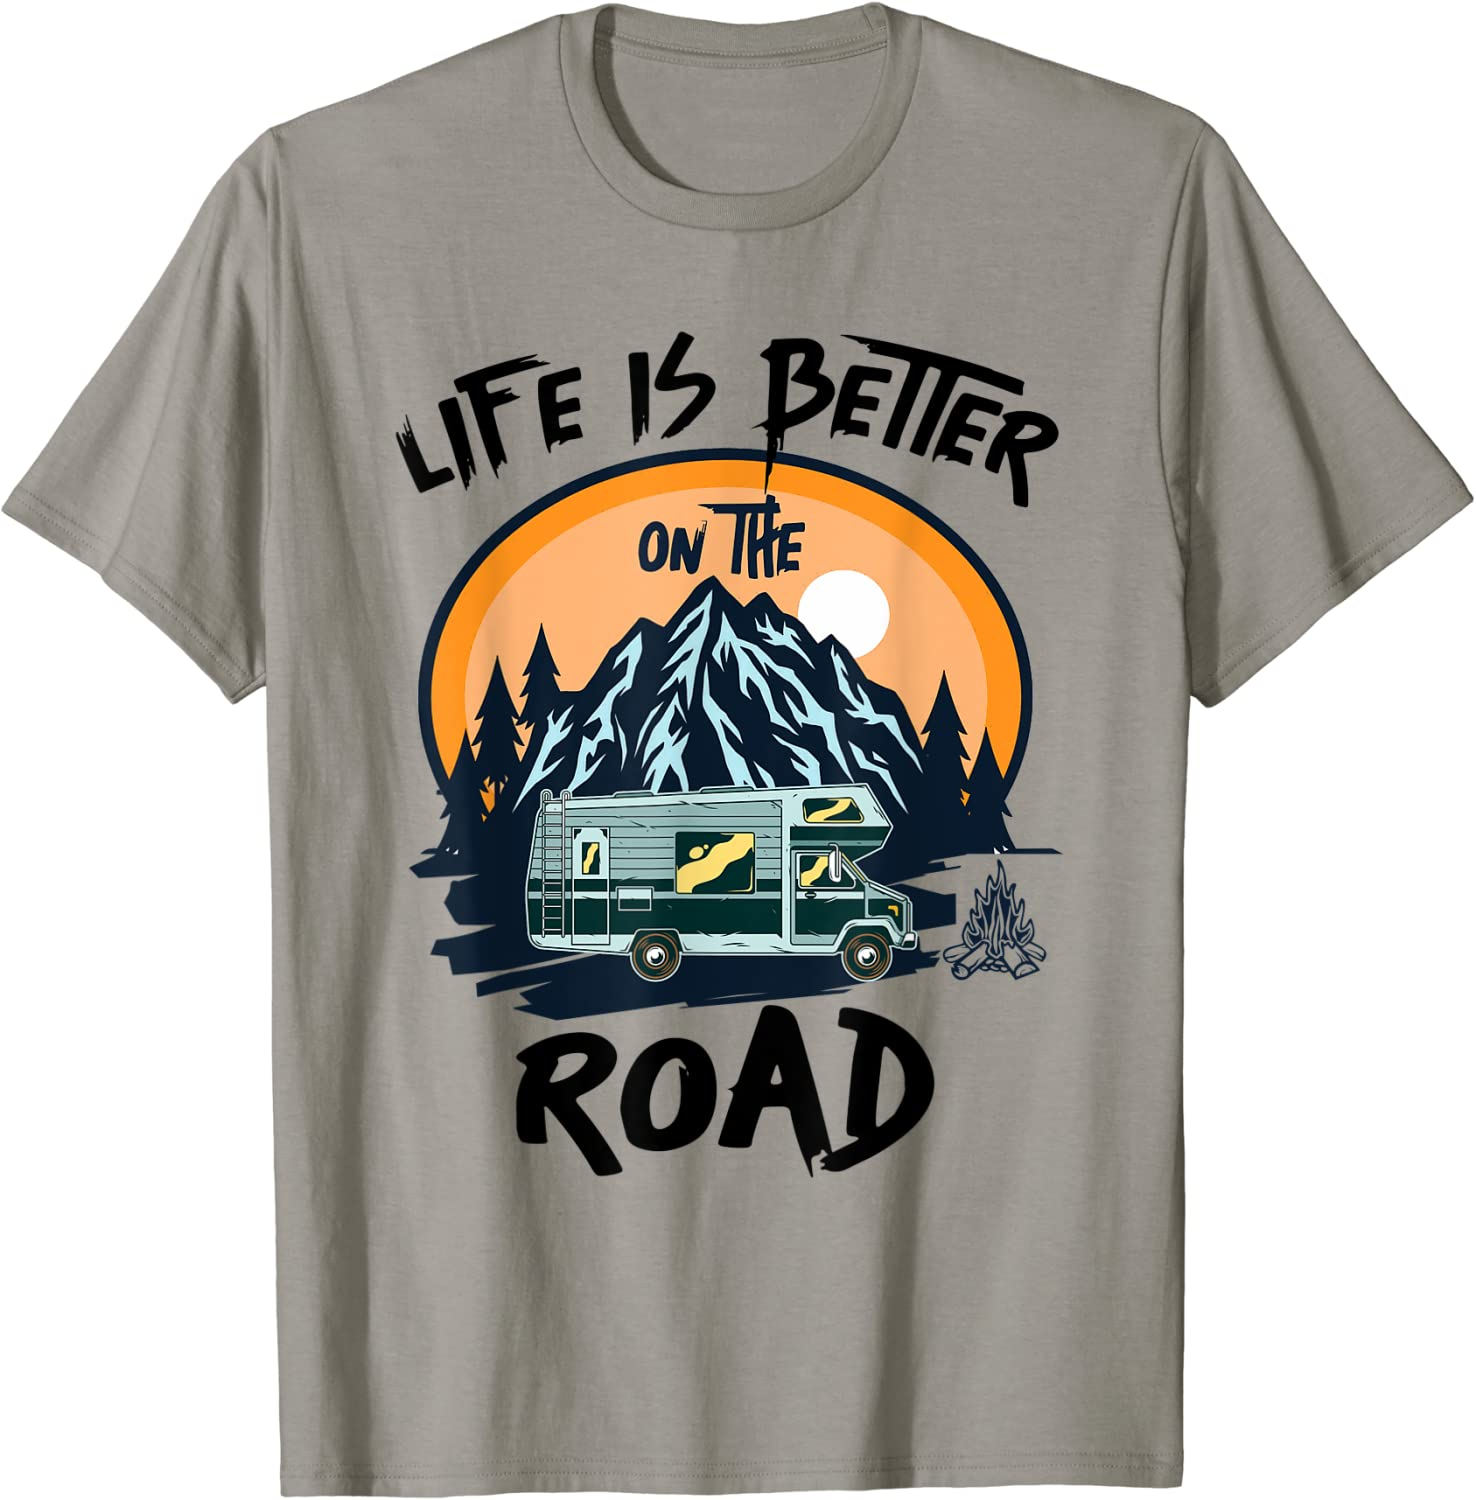 Life is Better on the Road 25% OFF Men Year-end gift Women Travel T-S Girls Boys and